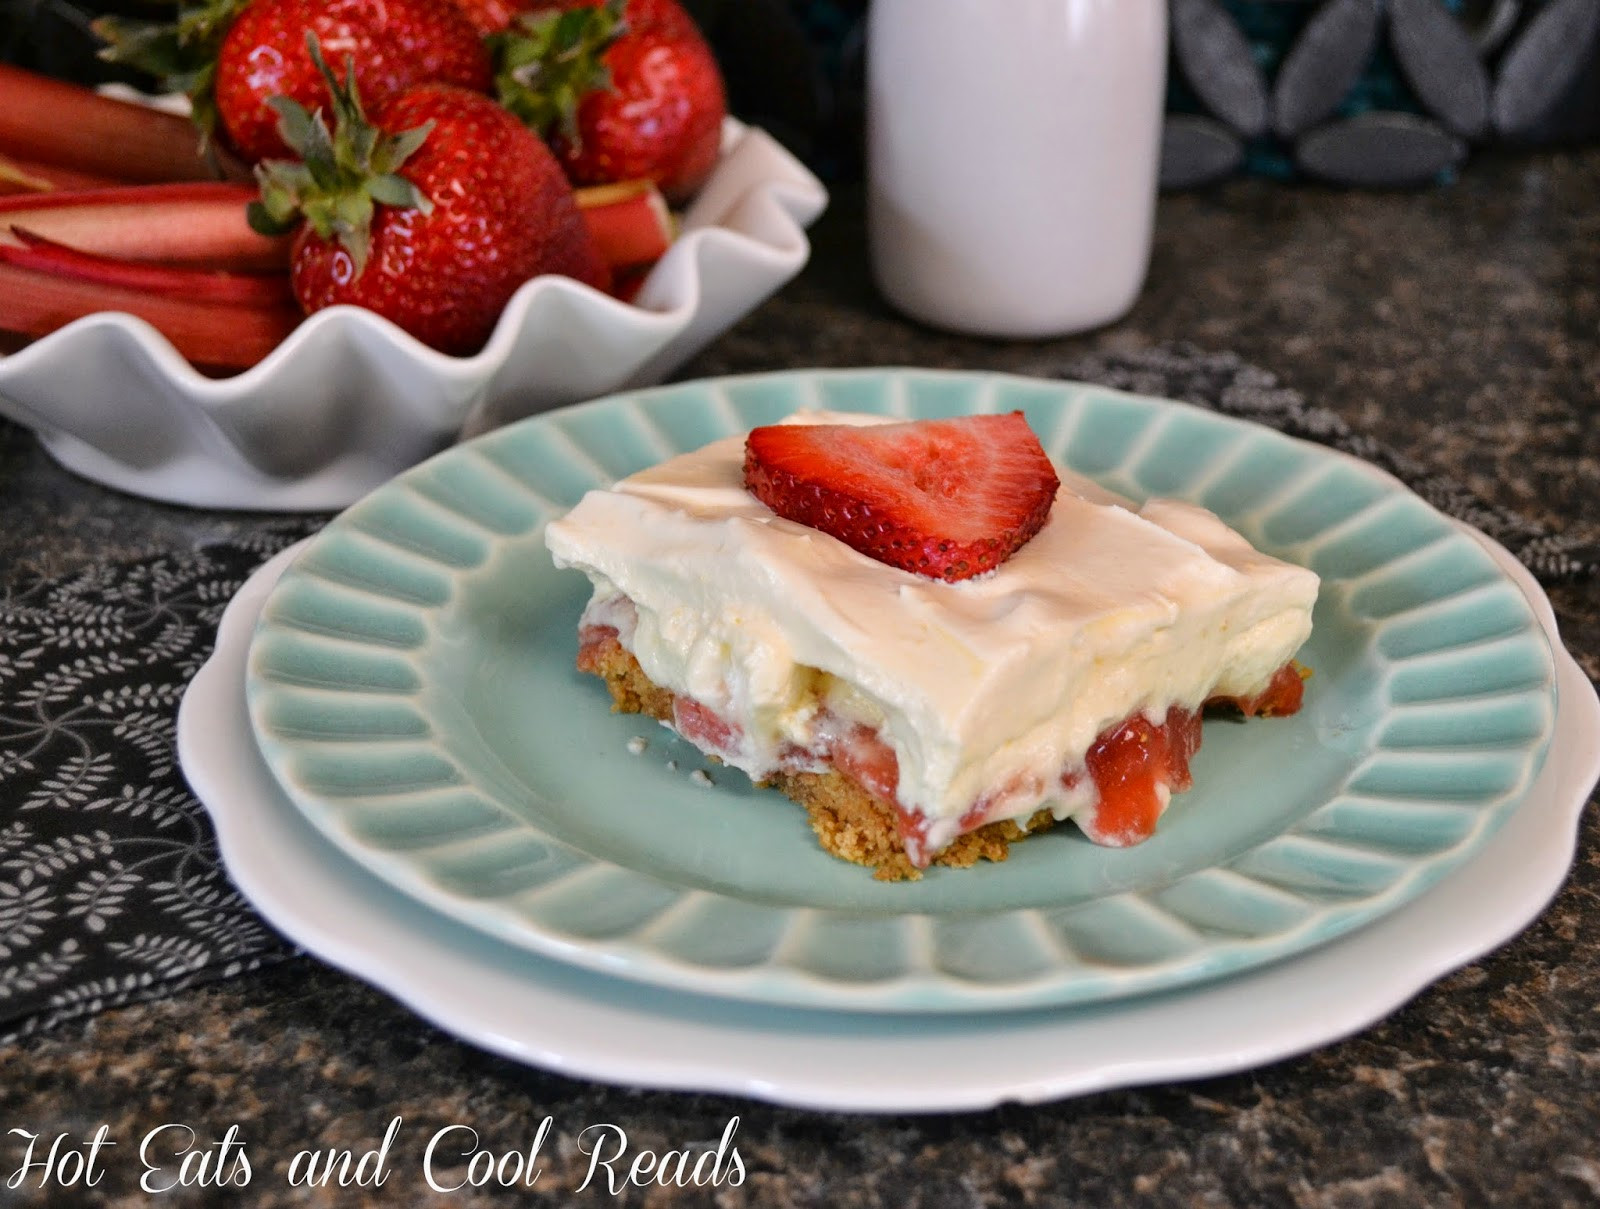 Strawberry Rubarb Dessert  Hot Eats and Cool Reads Luscious Strawberry Rhubarb